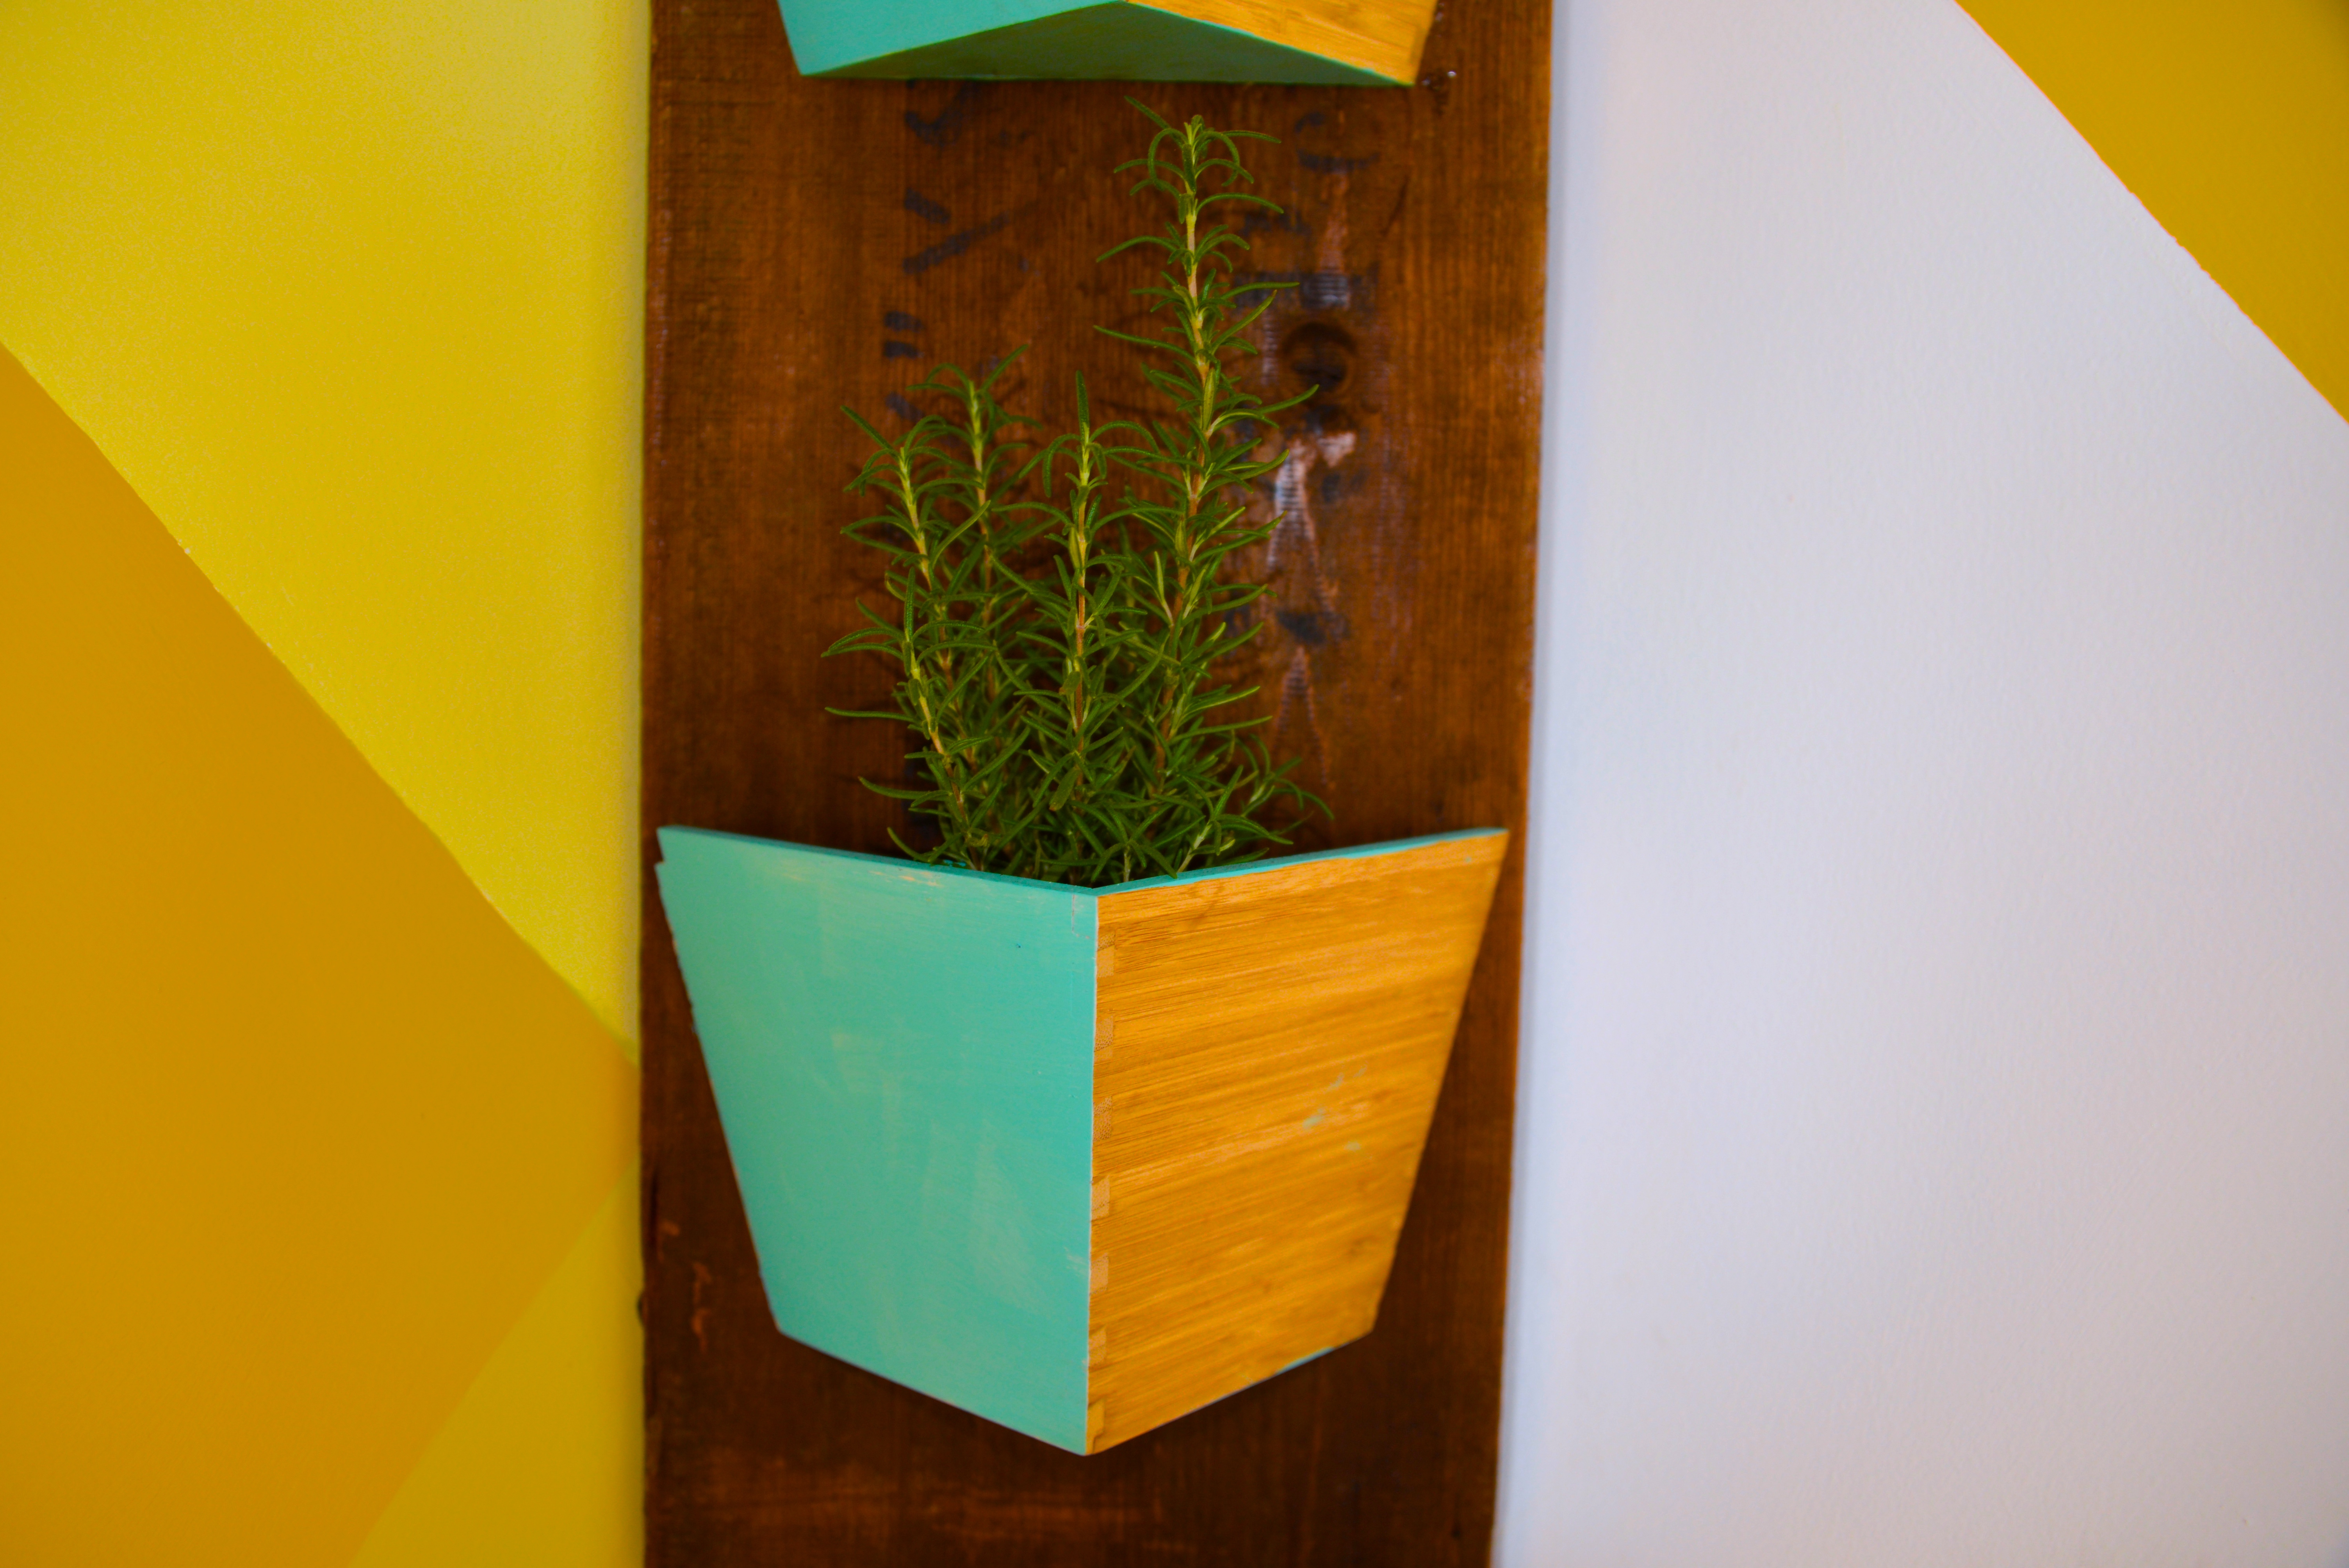 2015_MyFixitUpLife_Sun Room_Mud Room_Yellow Pattern_Flower Box_Plants_After_Rosemary